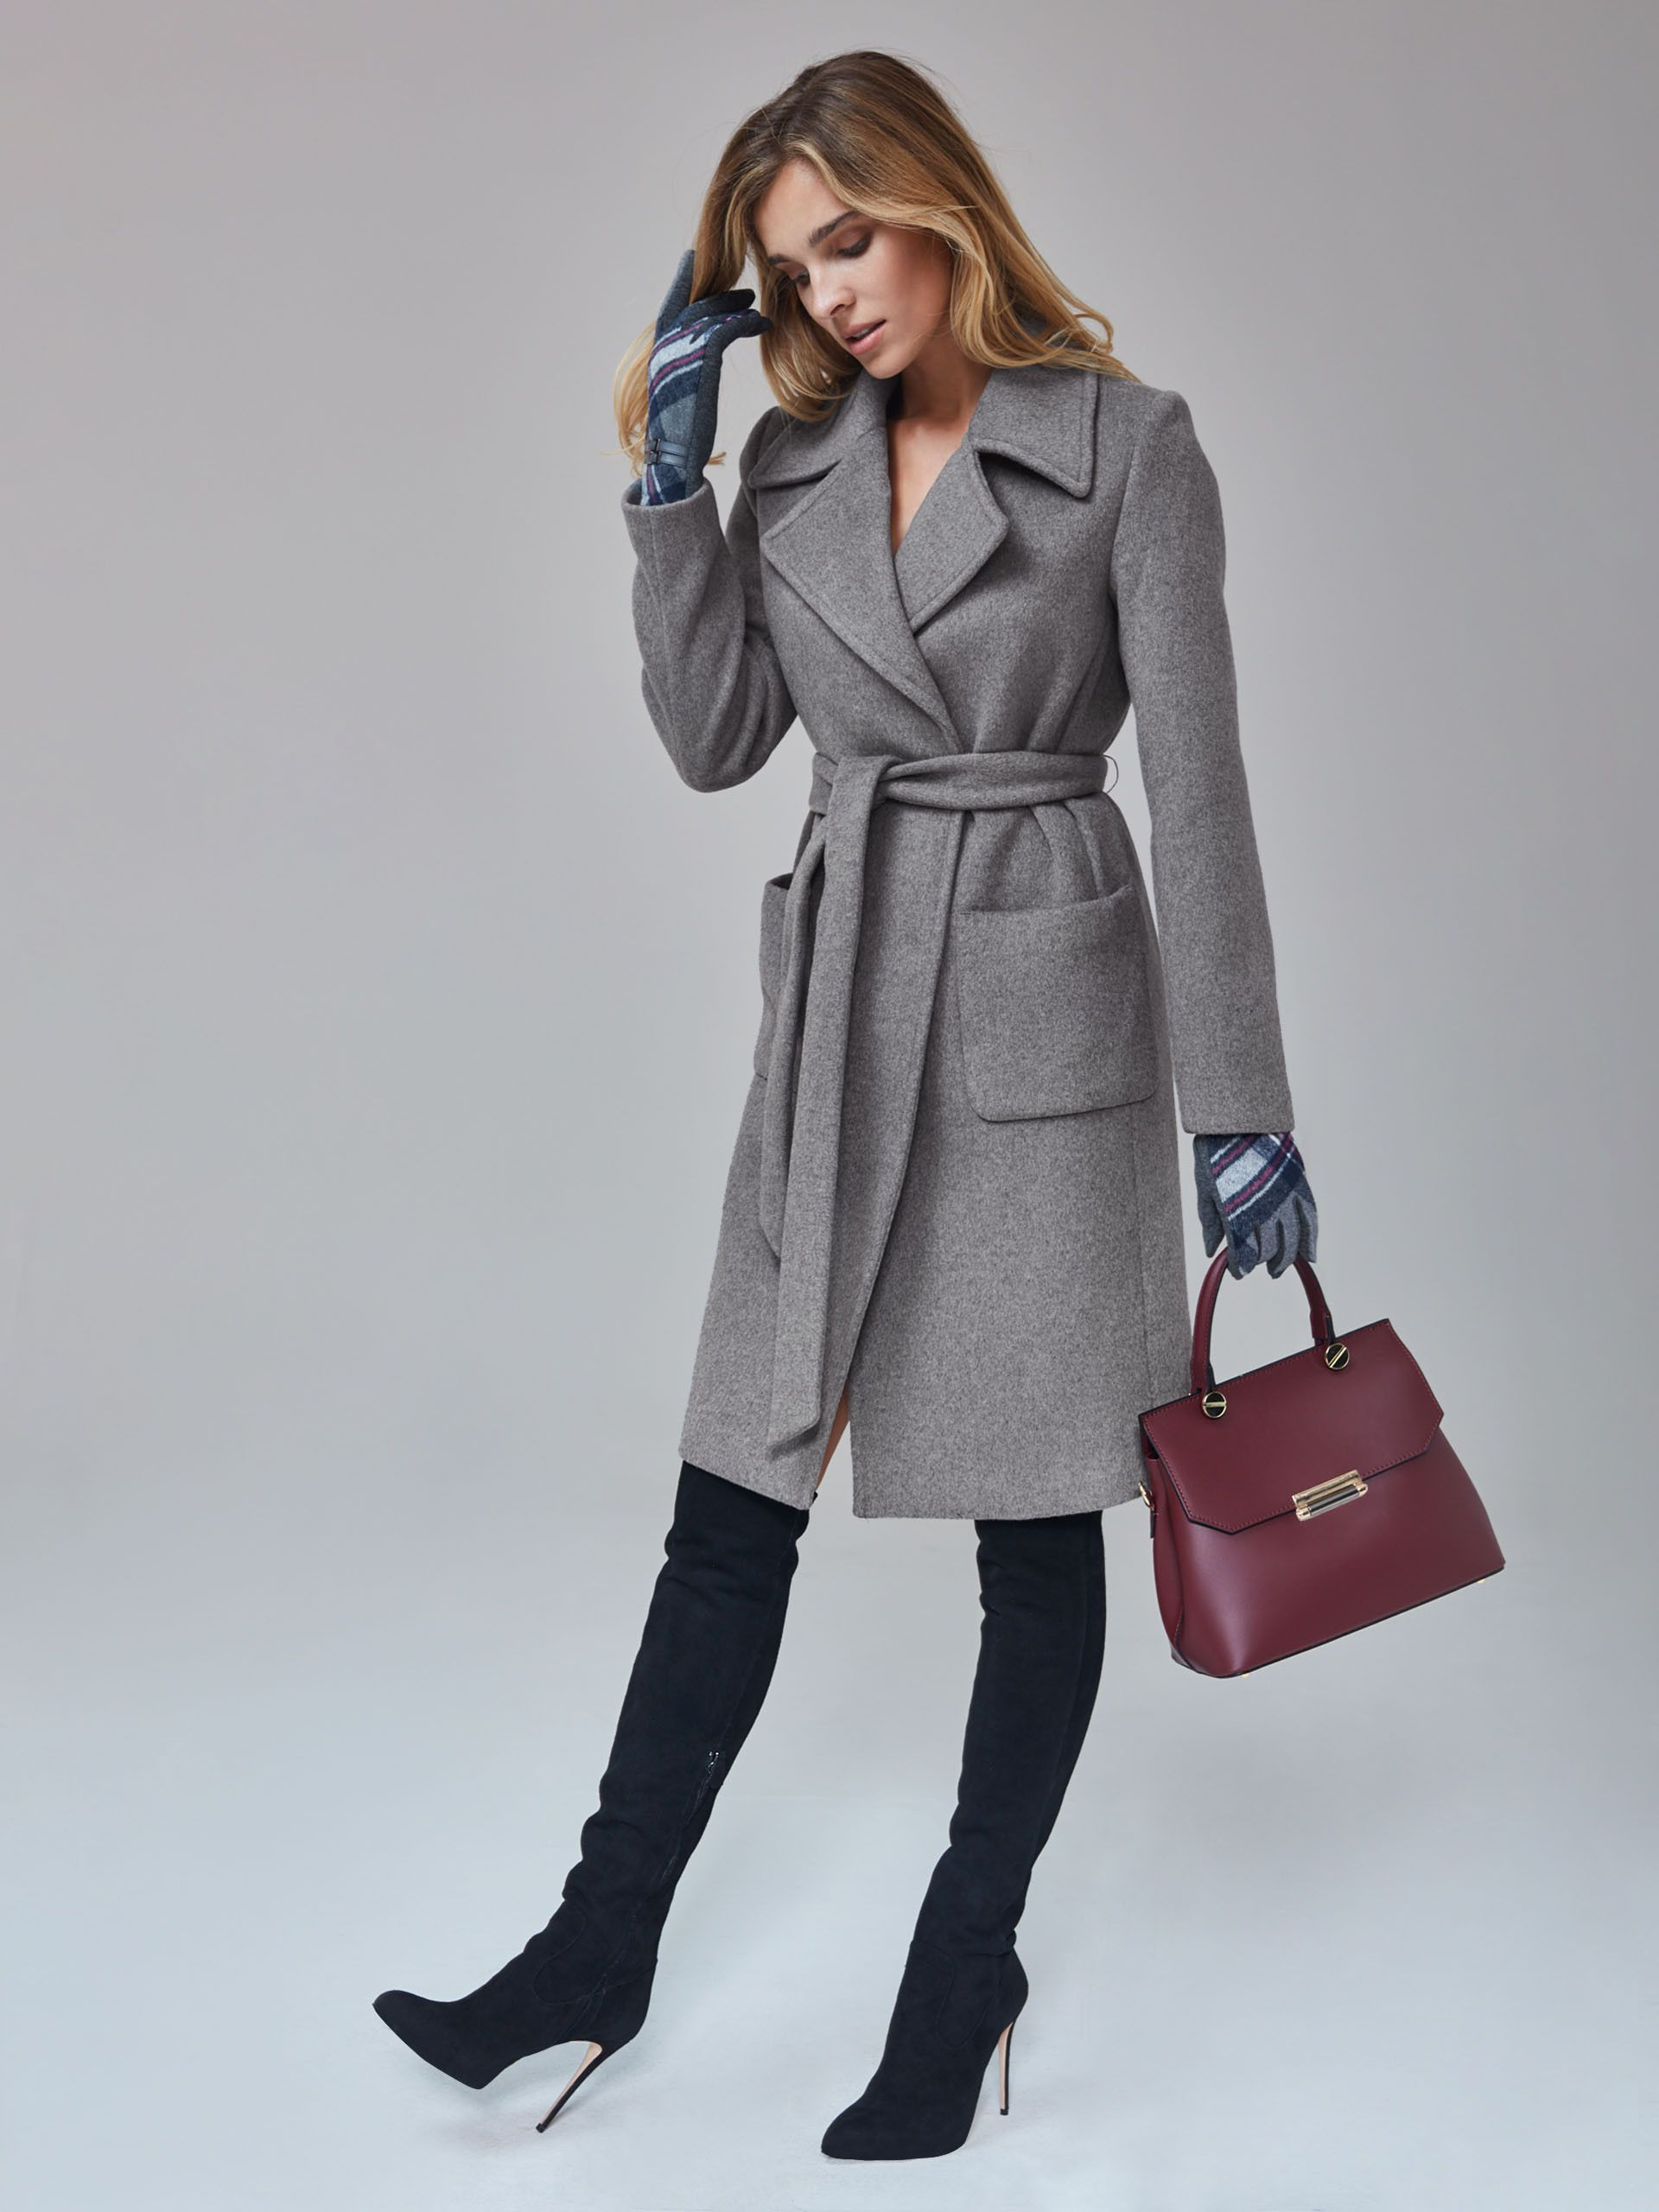 f67a2a38bc Taranko AW 2018 19 Autumn Aesthetic Grey Coat